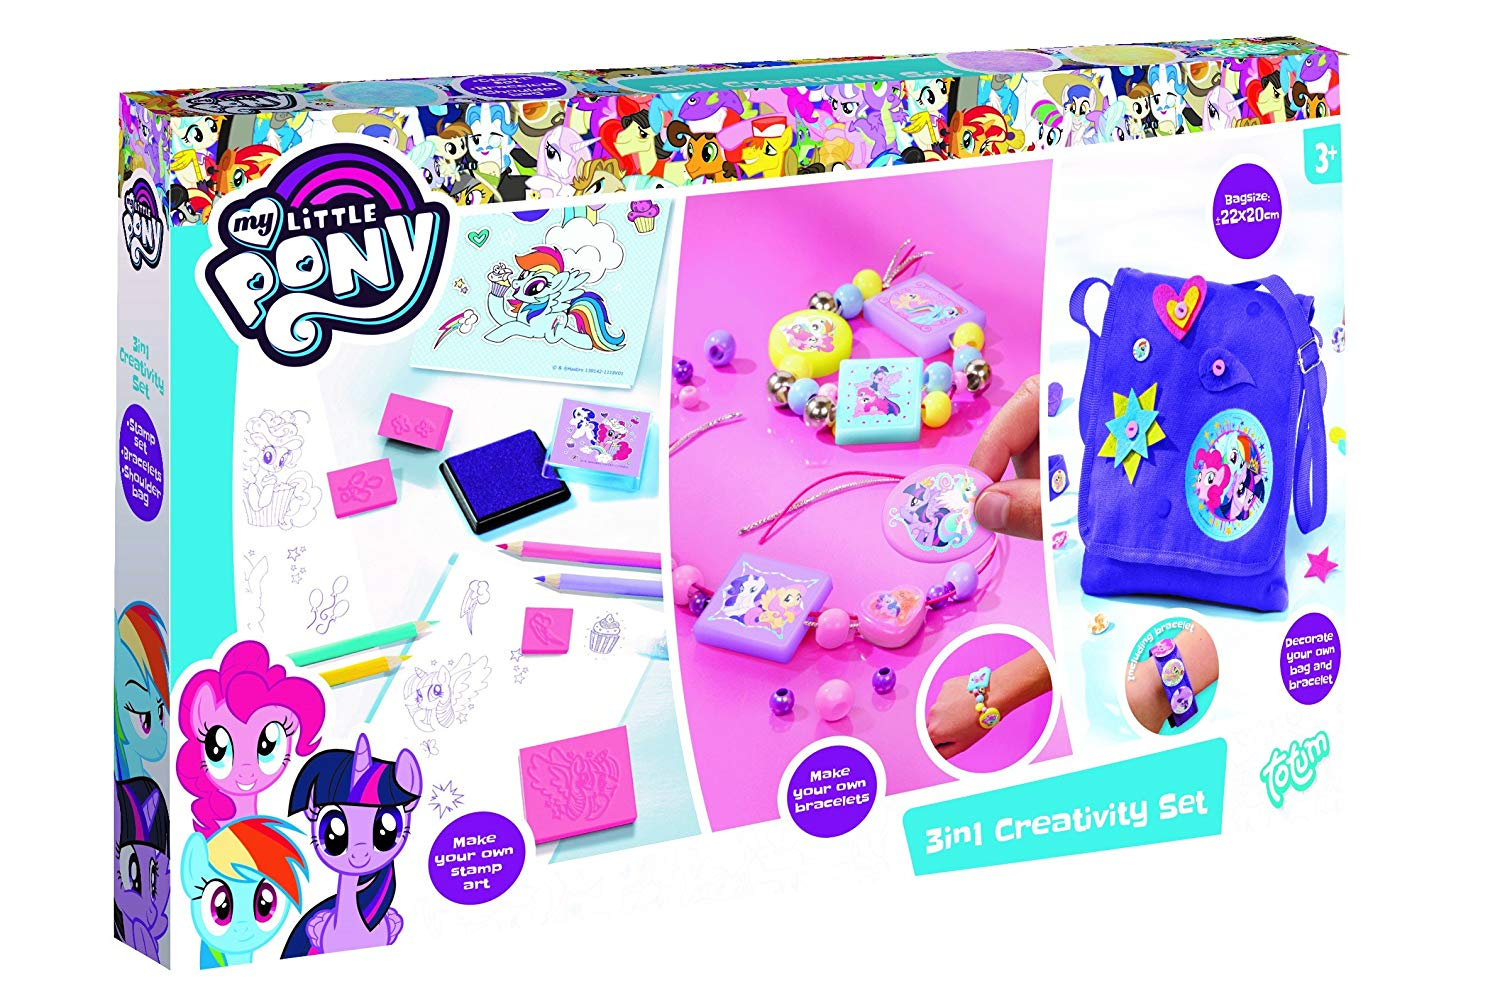 MLP: TM 3-In-1 Creativity Set